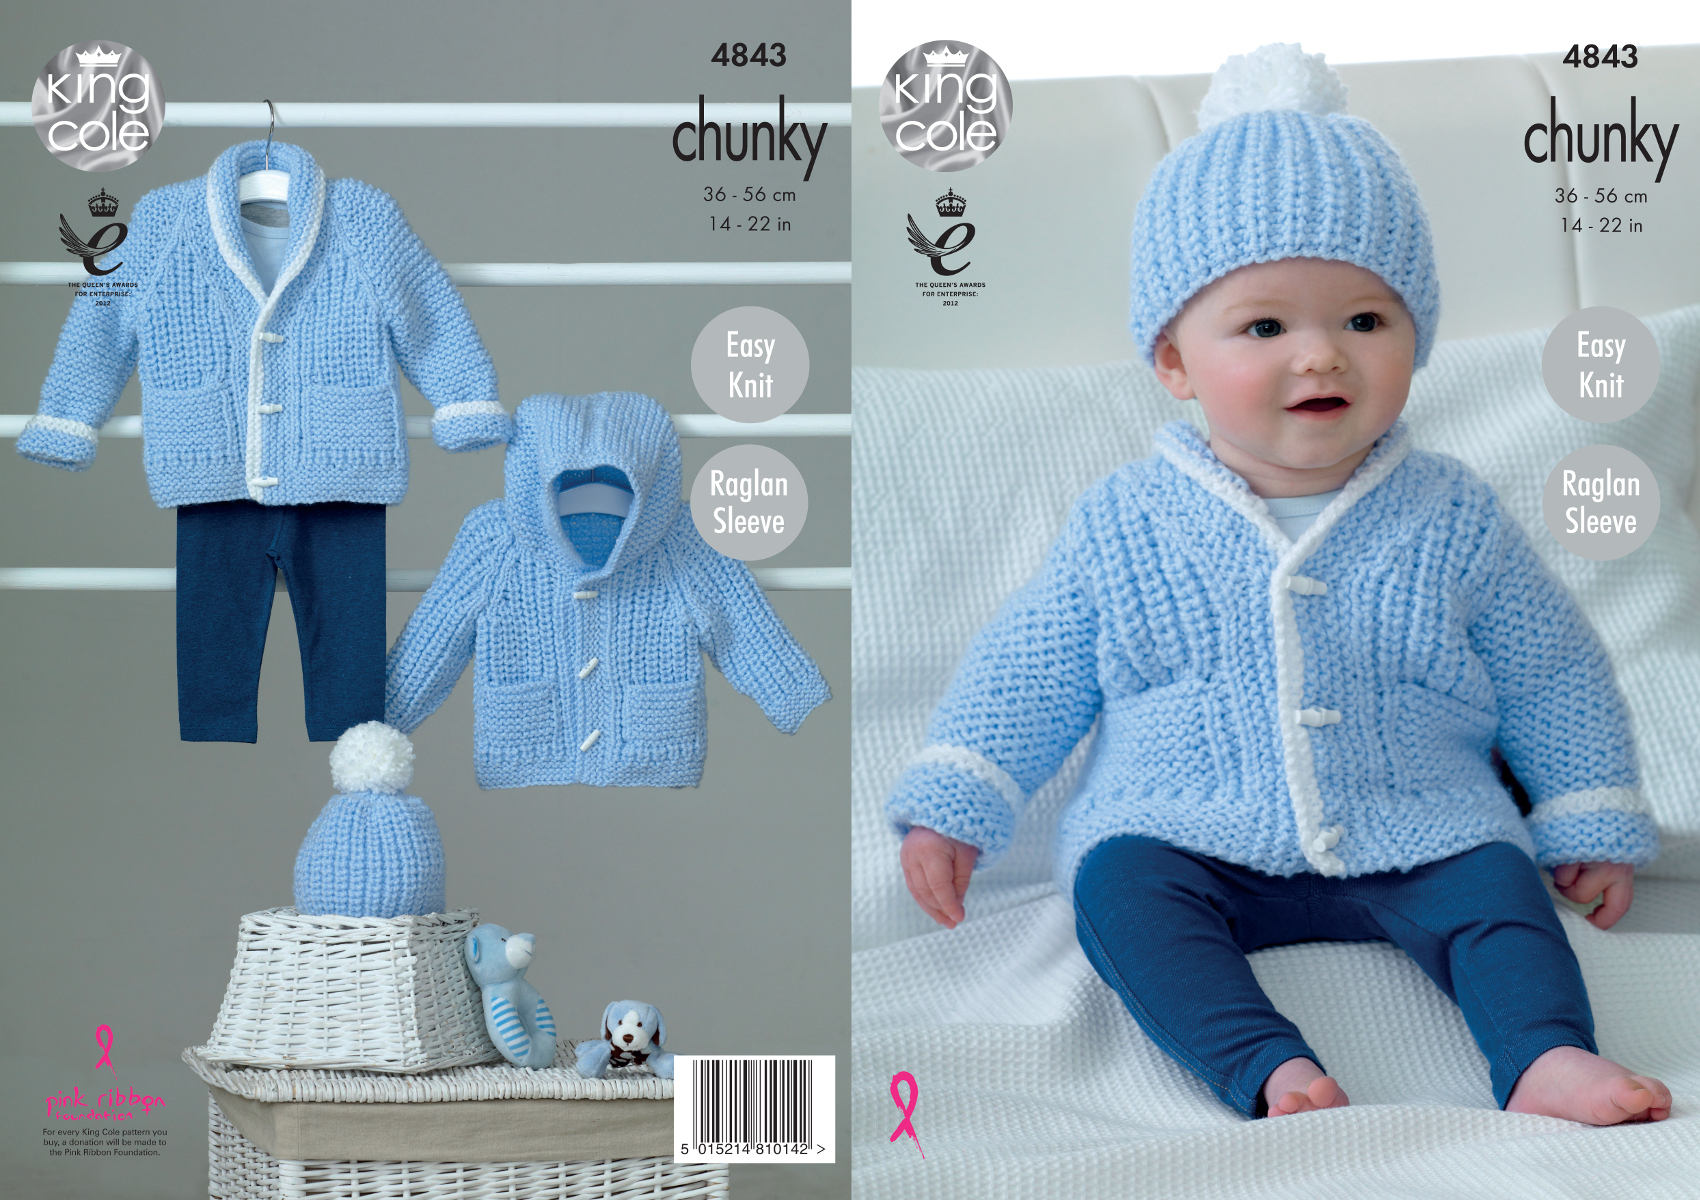 King Cole Baby Chunky Knitting Pattern Easy Knit Raglan Sleeve ...